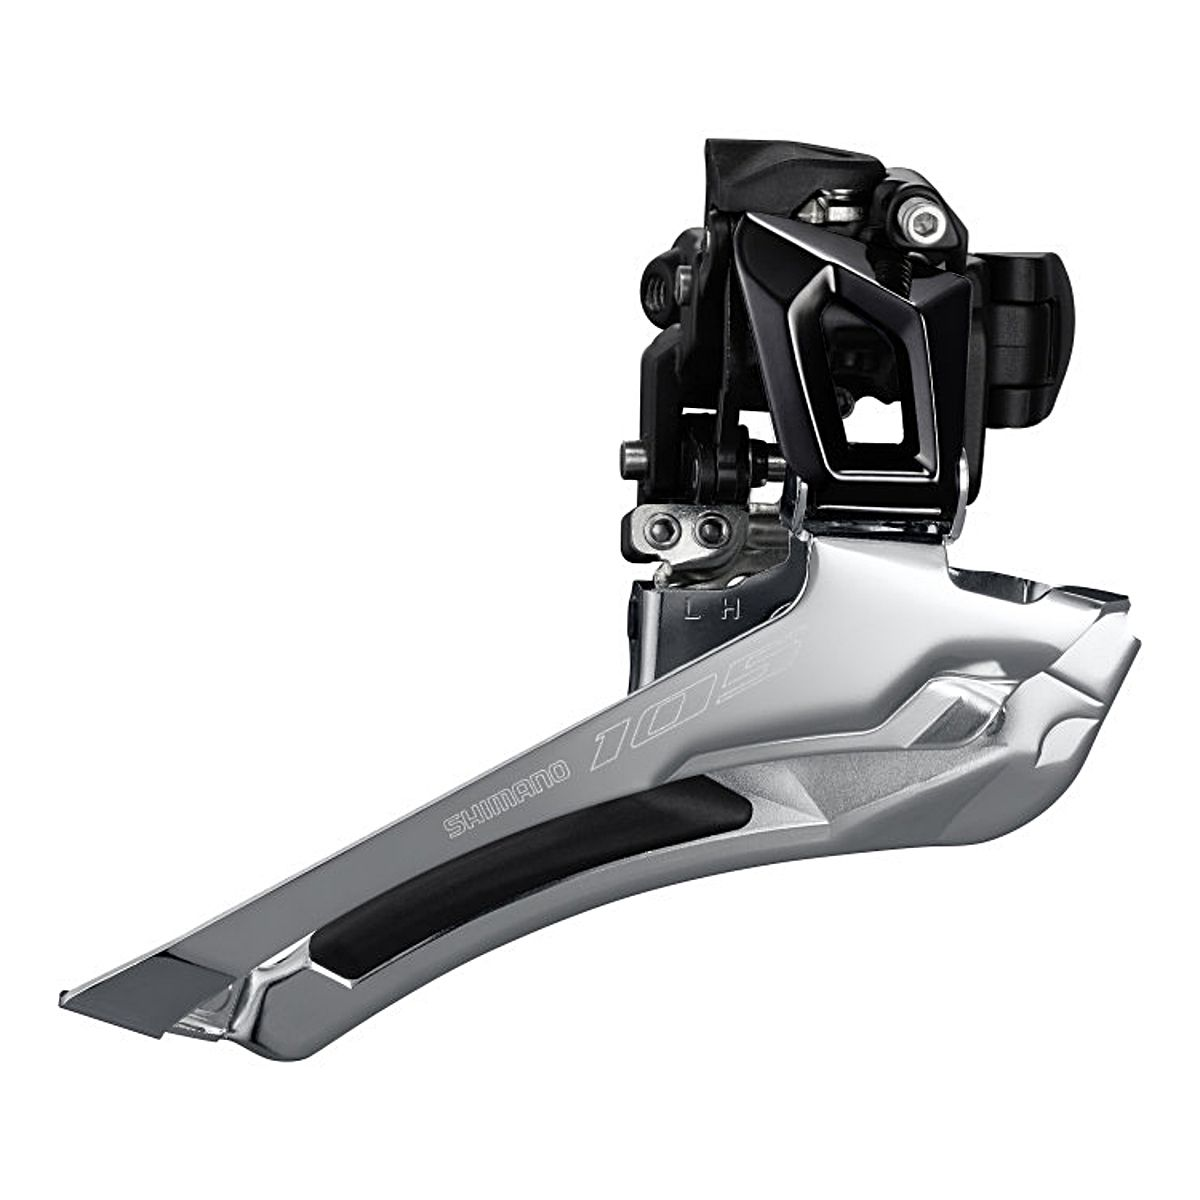 105 FD-R7000-B 11-speed front derailleur with clamp mount